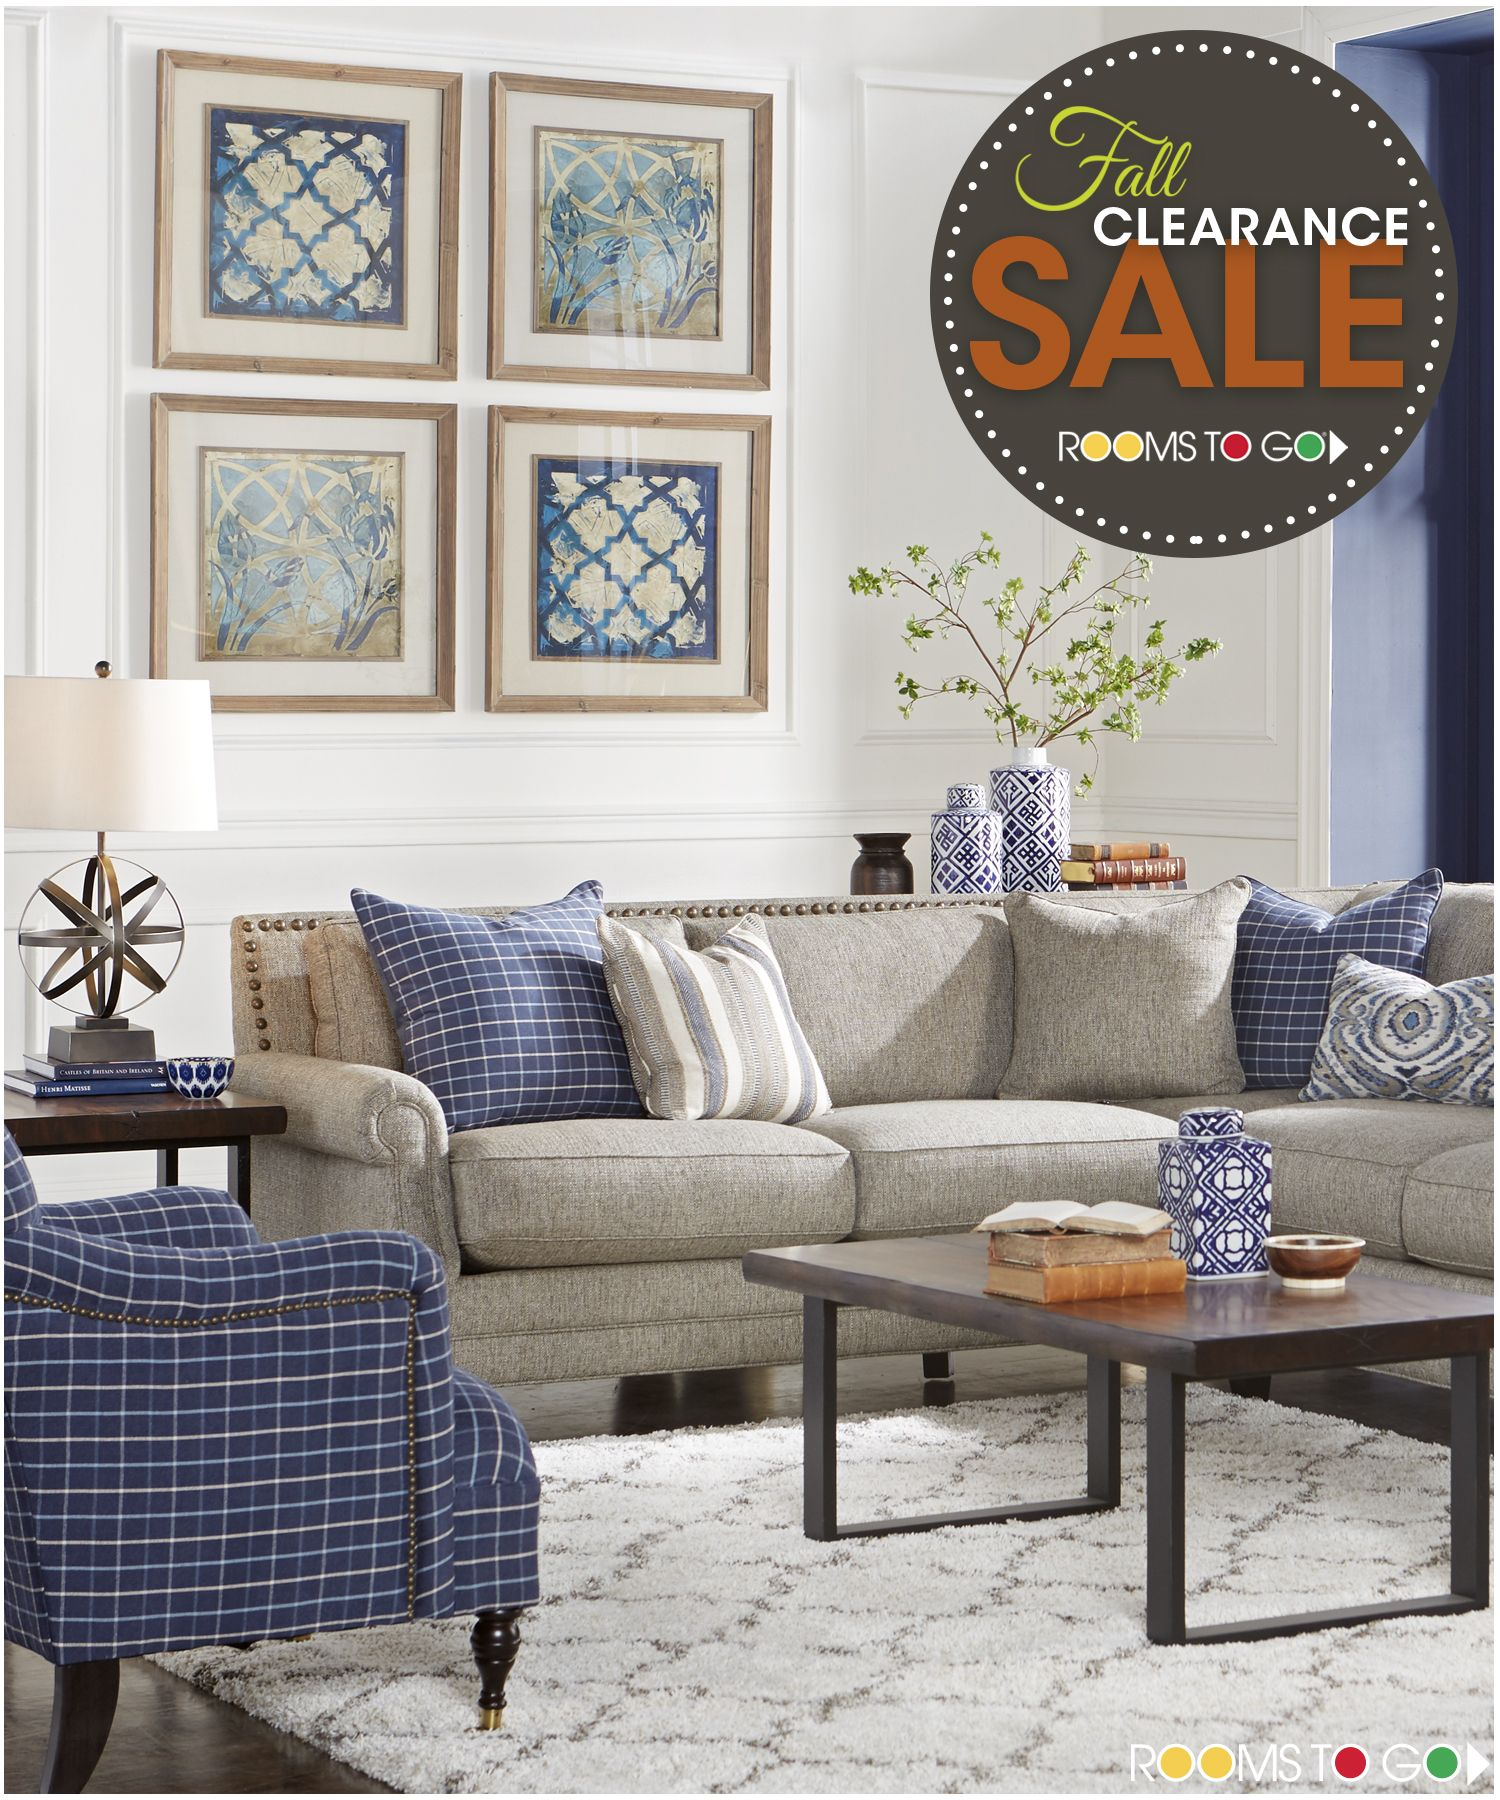 Visit Rooms To Go Now During Our Fall Clearance Sales